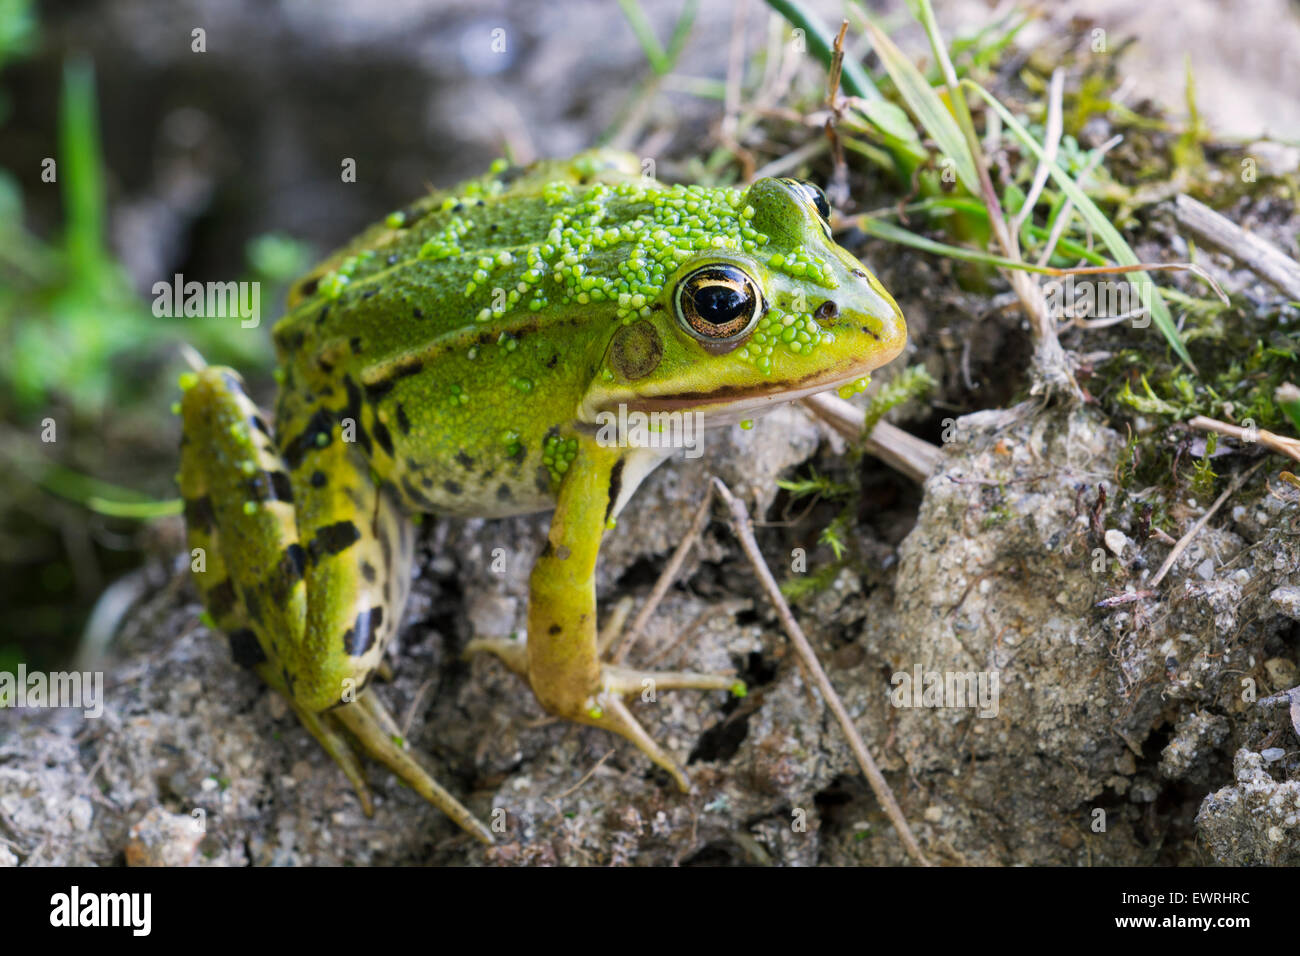 Edible frog / common water frog / green frog (Pelophylax kl. esculentus / Rana kl. esculenta) sitting on pond bank - Stock Image